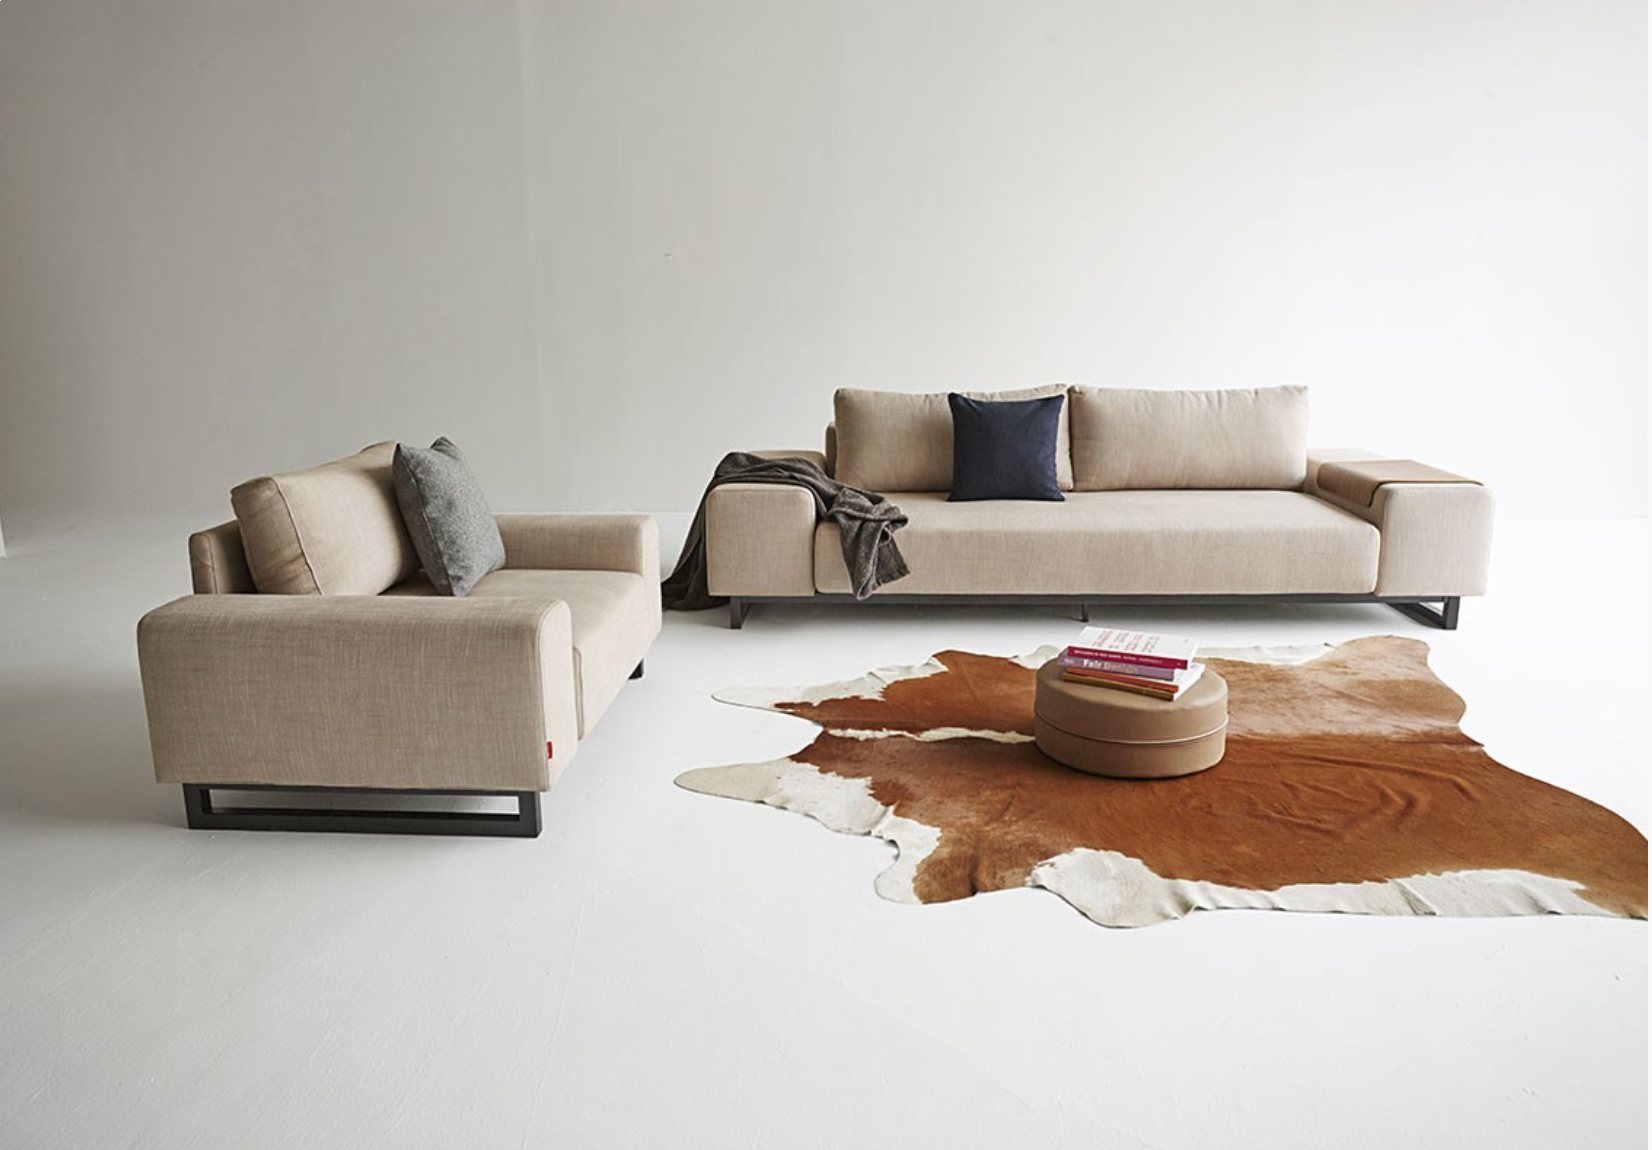 Grand Deluxe Excess Lounge Sofa bed by Innovation - Sofa Beds Star ...